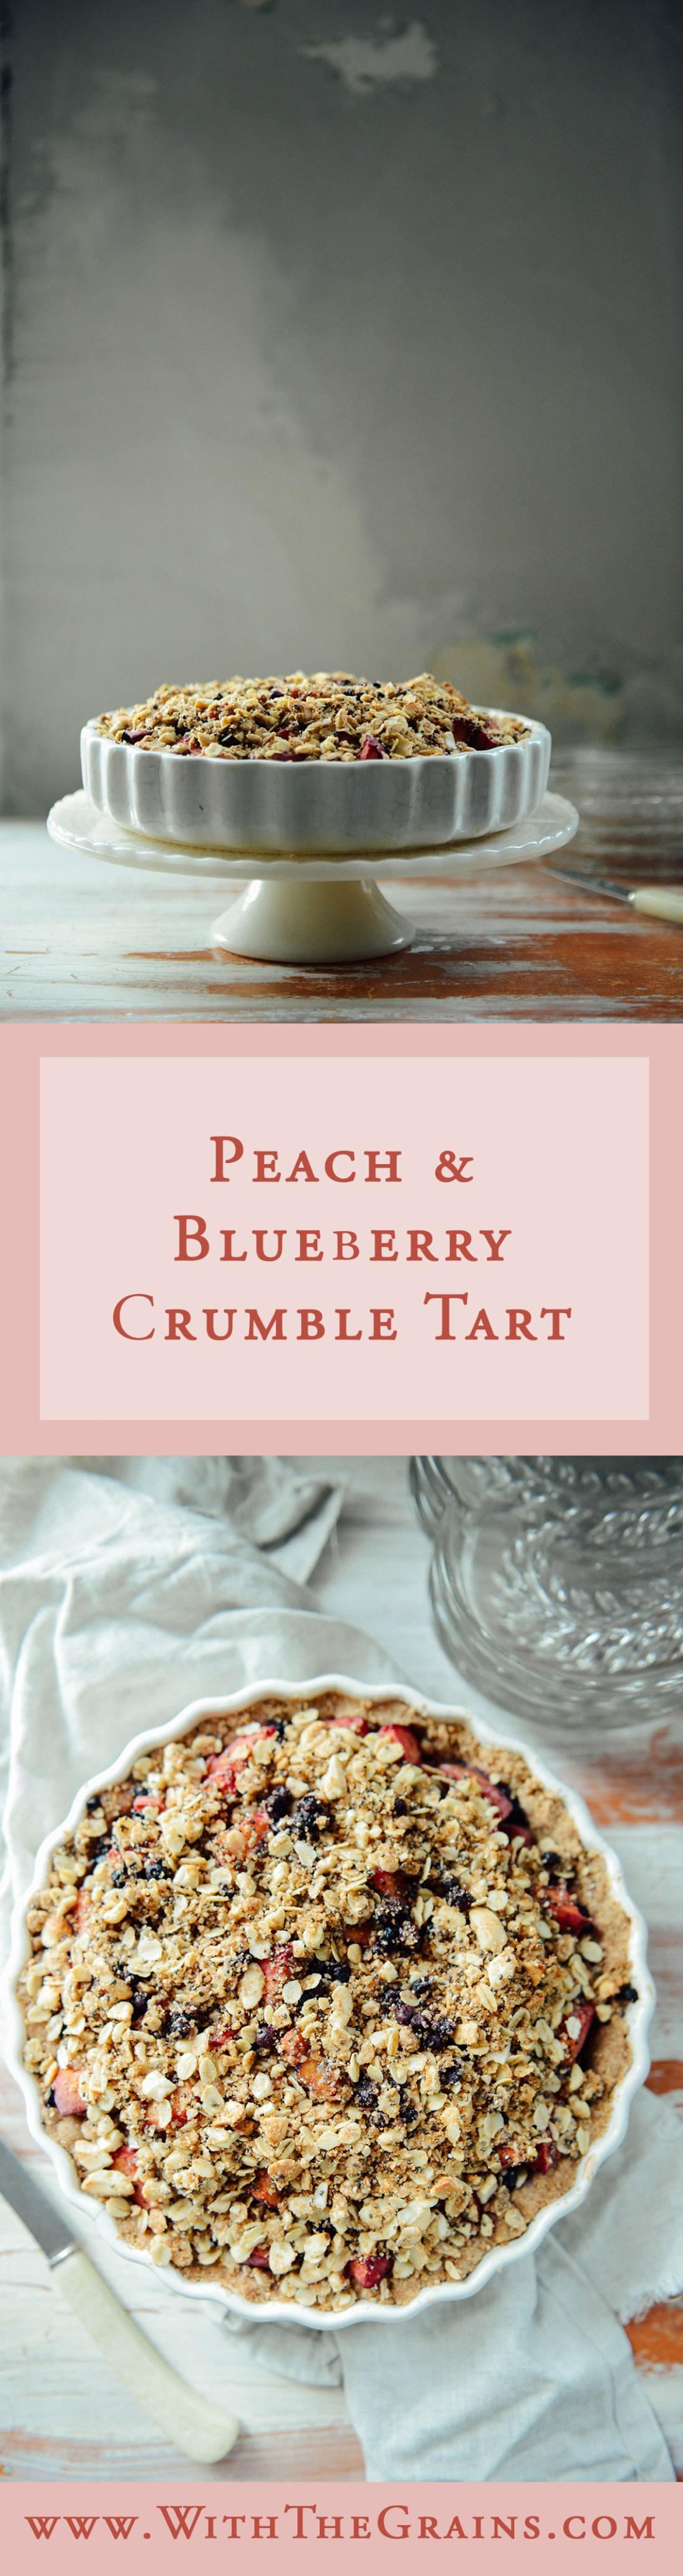 Peach Crumble Tart by With The Grains